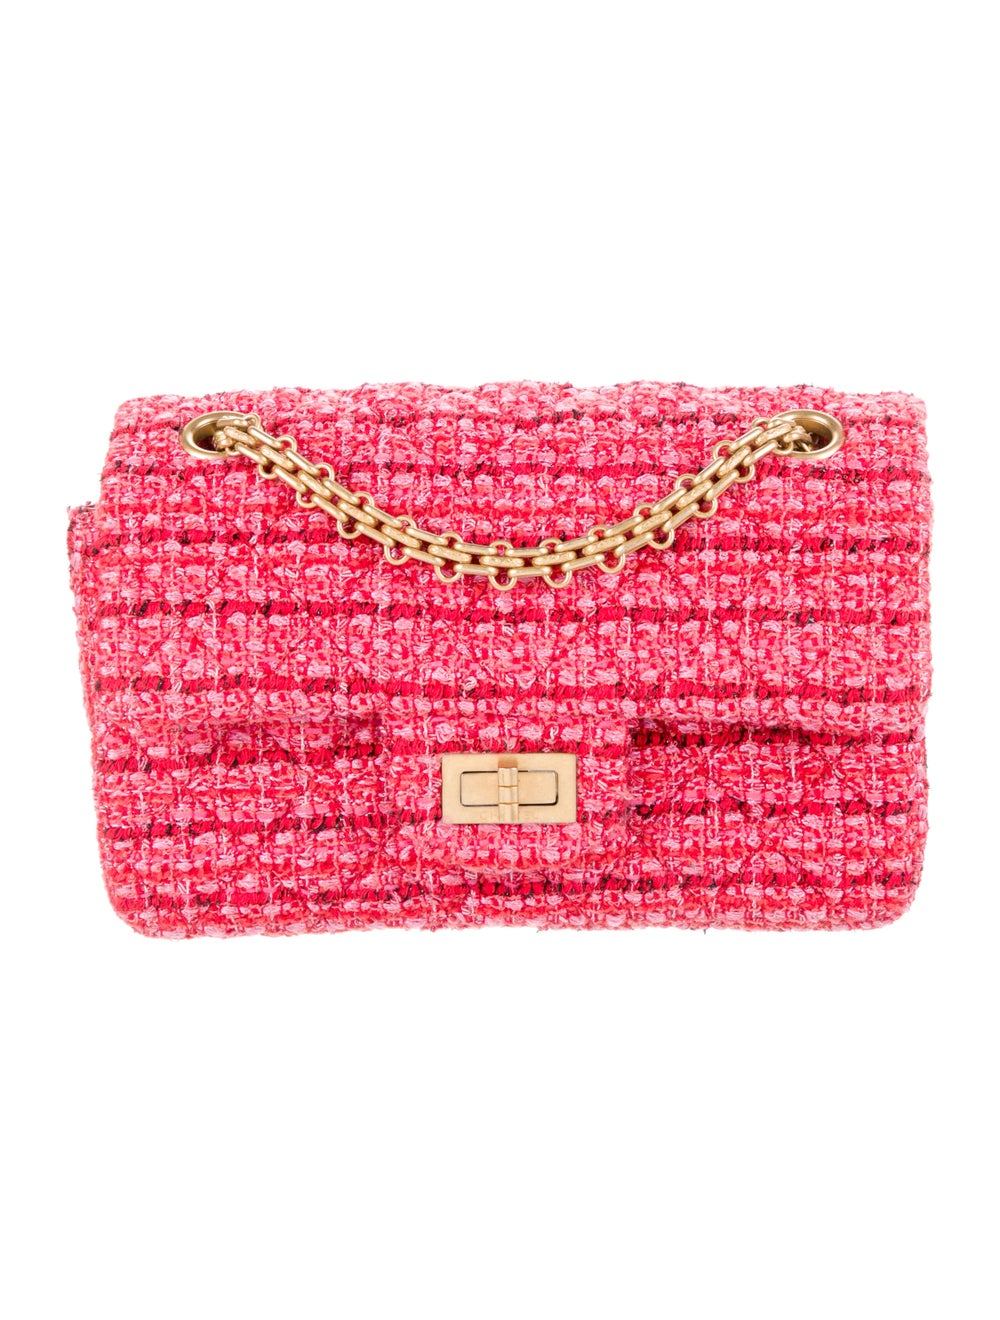 Chanel Tweed Reissue Mini Flap Bag Red - image 1